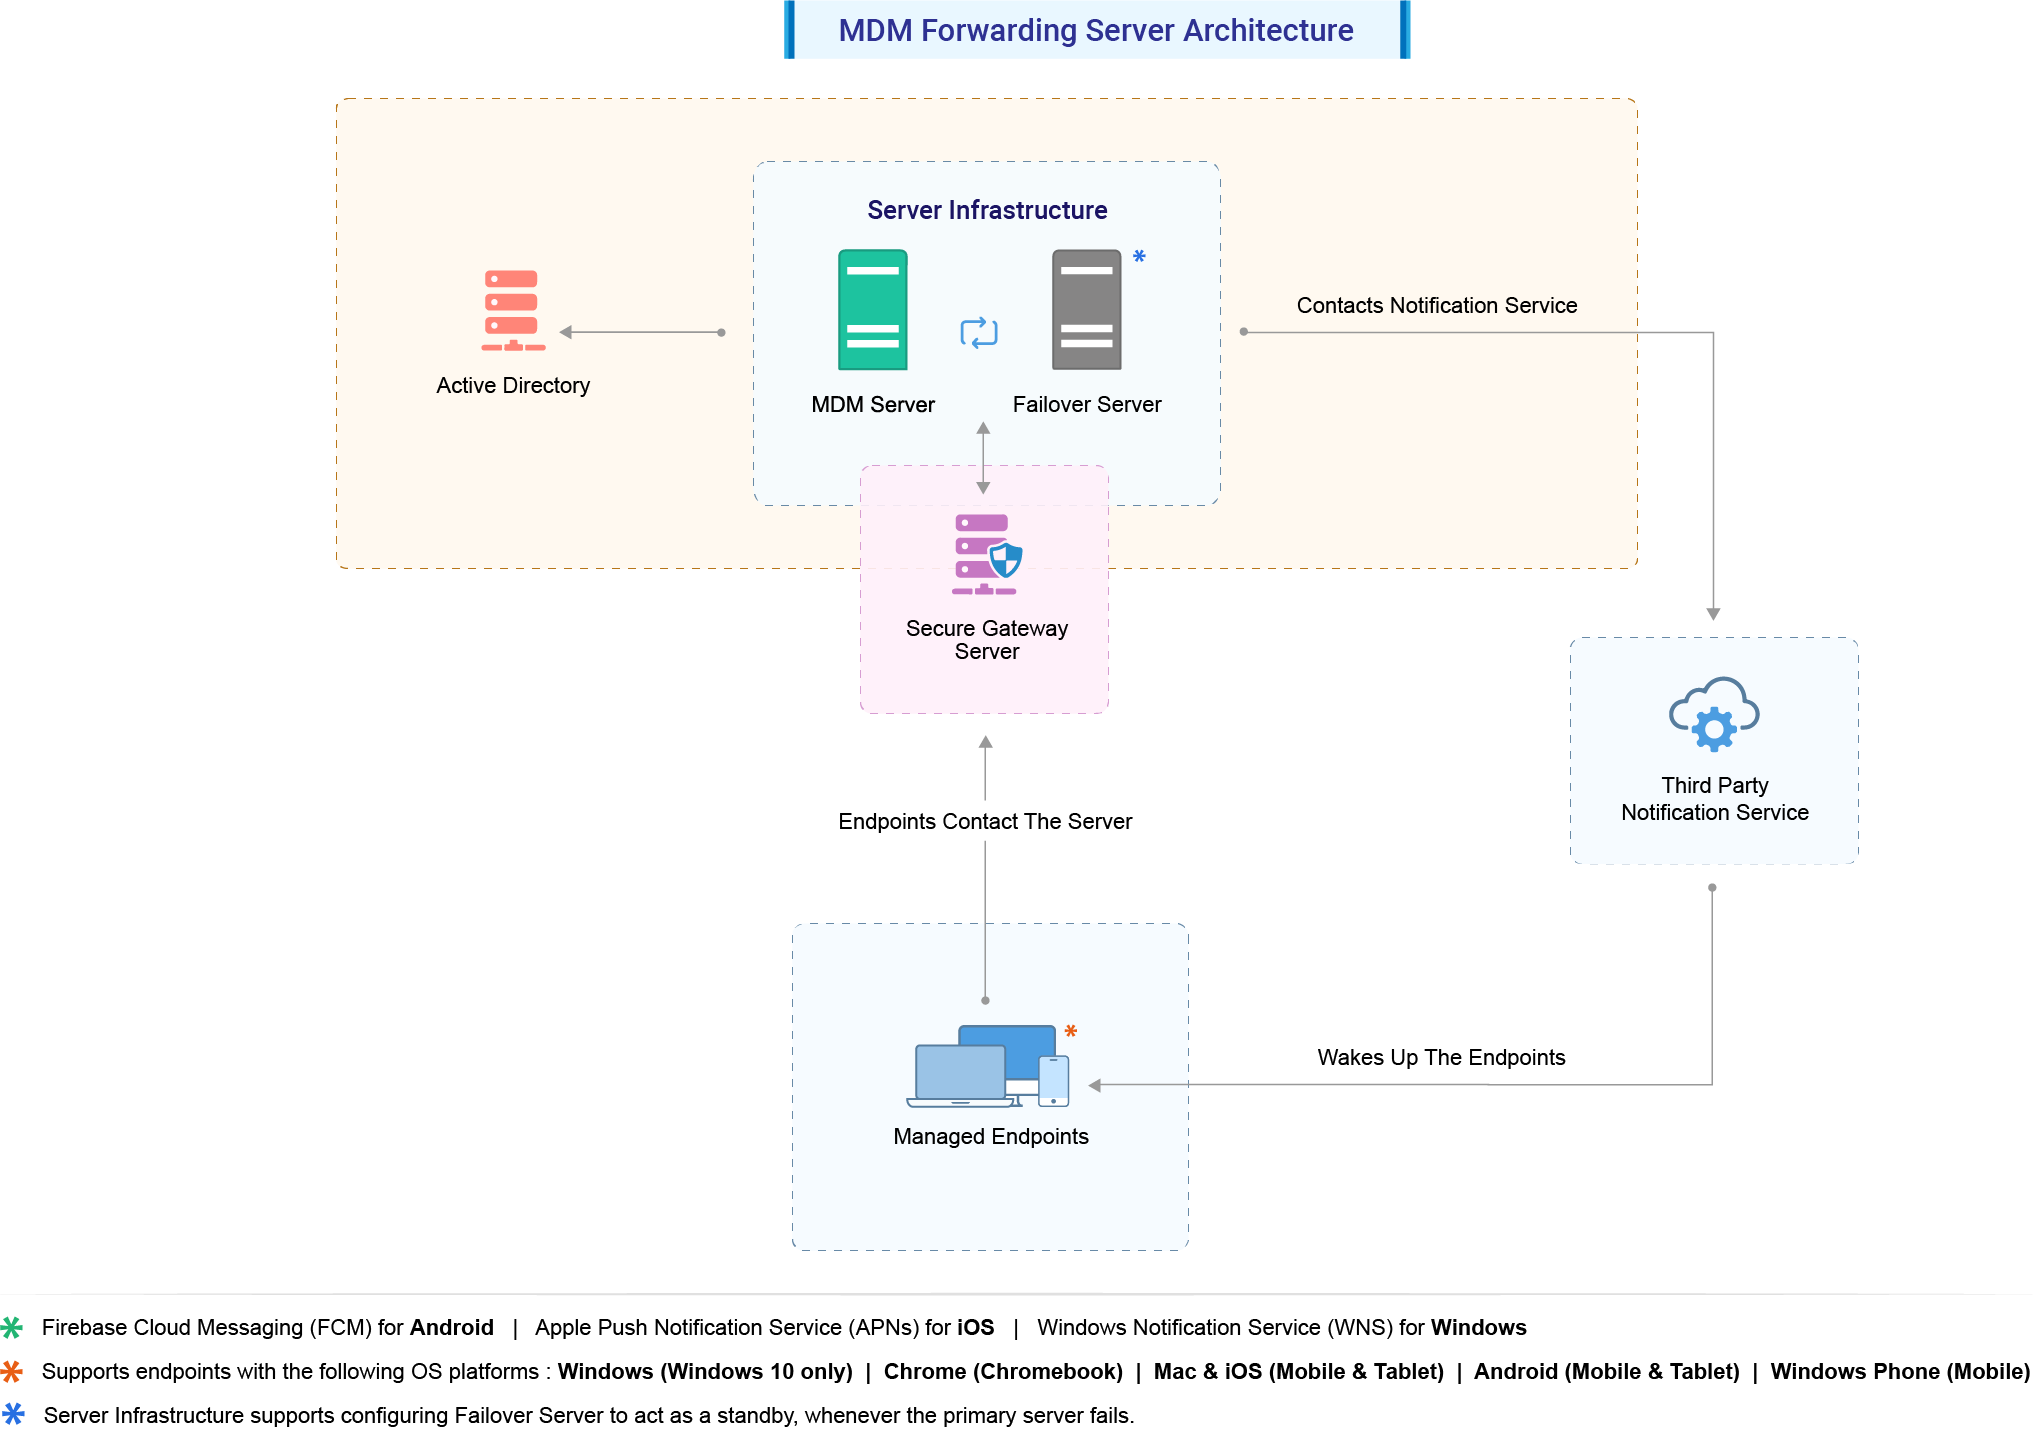 Mobile Device Manager Plus Architecture